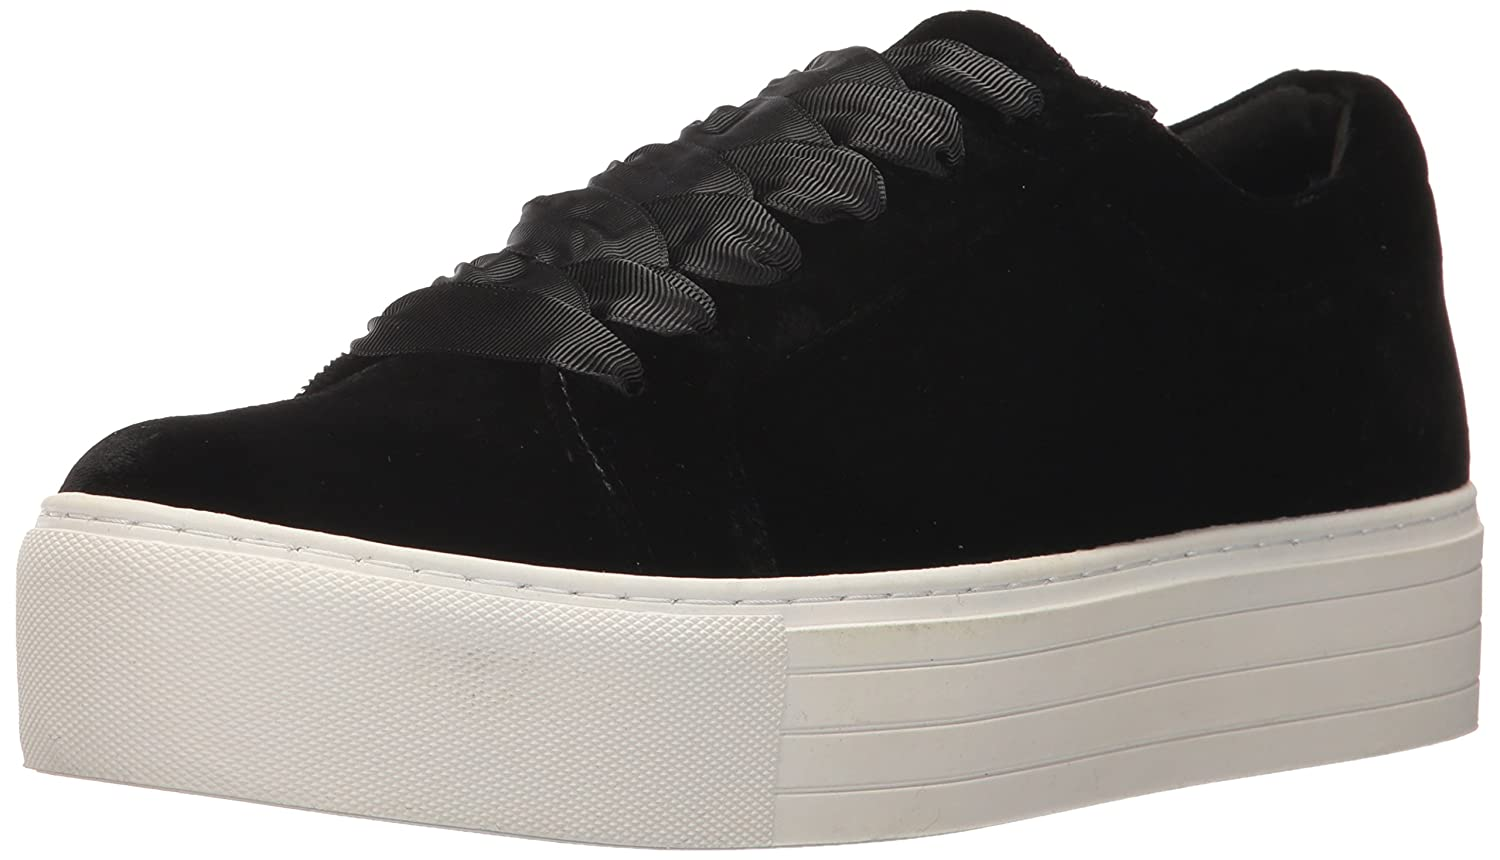 Kenneth Cole New York Women's Abbey Platform Lace up Velvet Fashion Sneaker B07194Z55X 10 B(M) US|Black